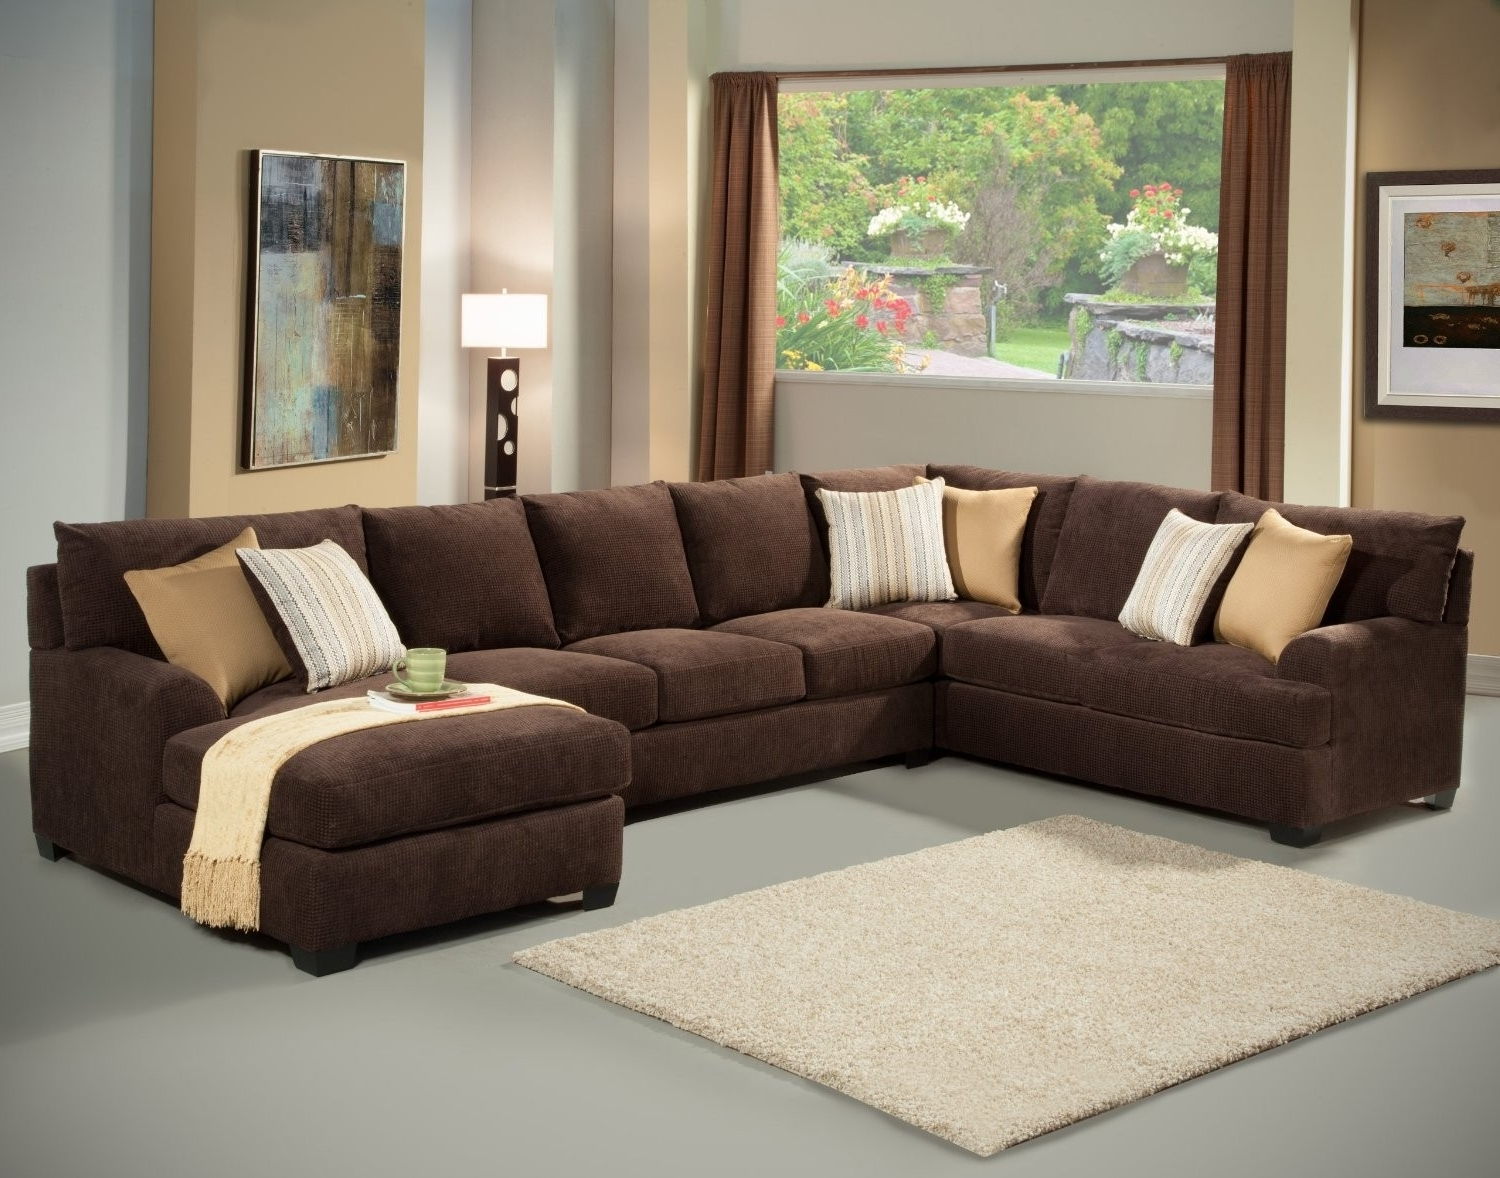 Phoenix Sectional Sofas Pertaining To Most Up To Date Lovely Sectional Sofa Phoenix – Buildsimplehome (View 9 of 15)